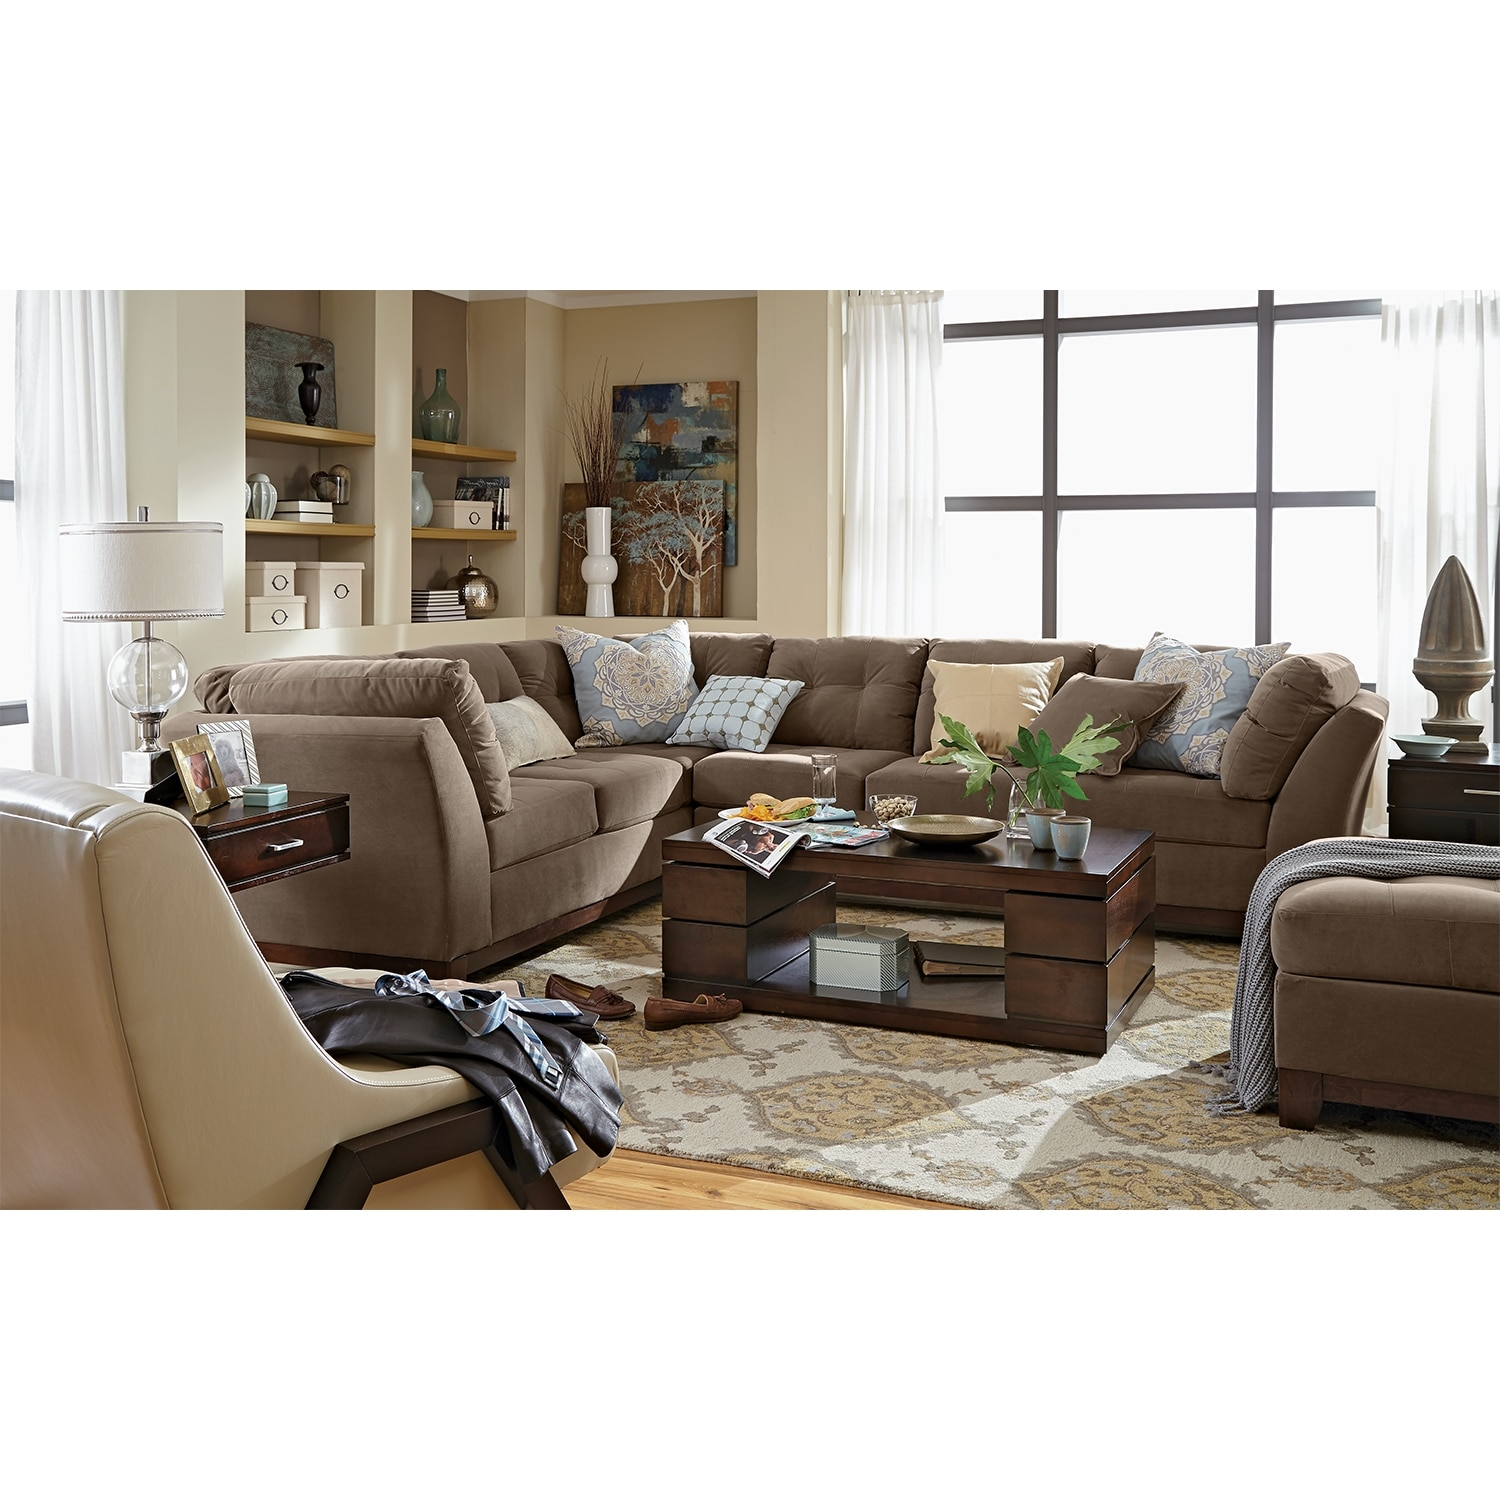 Solace Cocoa Ii Upholstery 2 Pc Sectional And Ottoman Value City Furniture